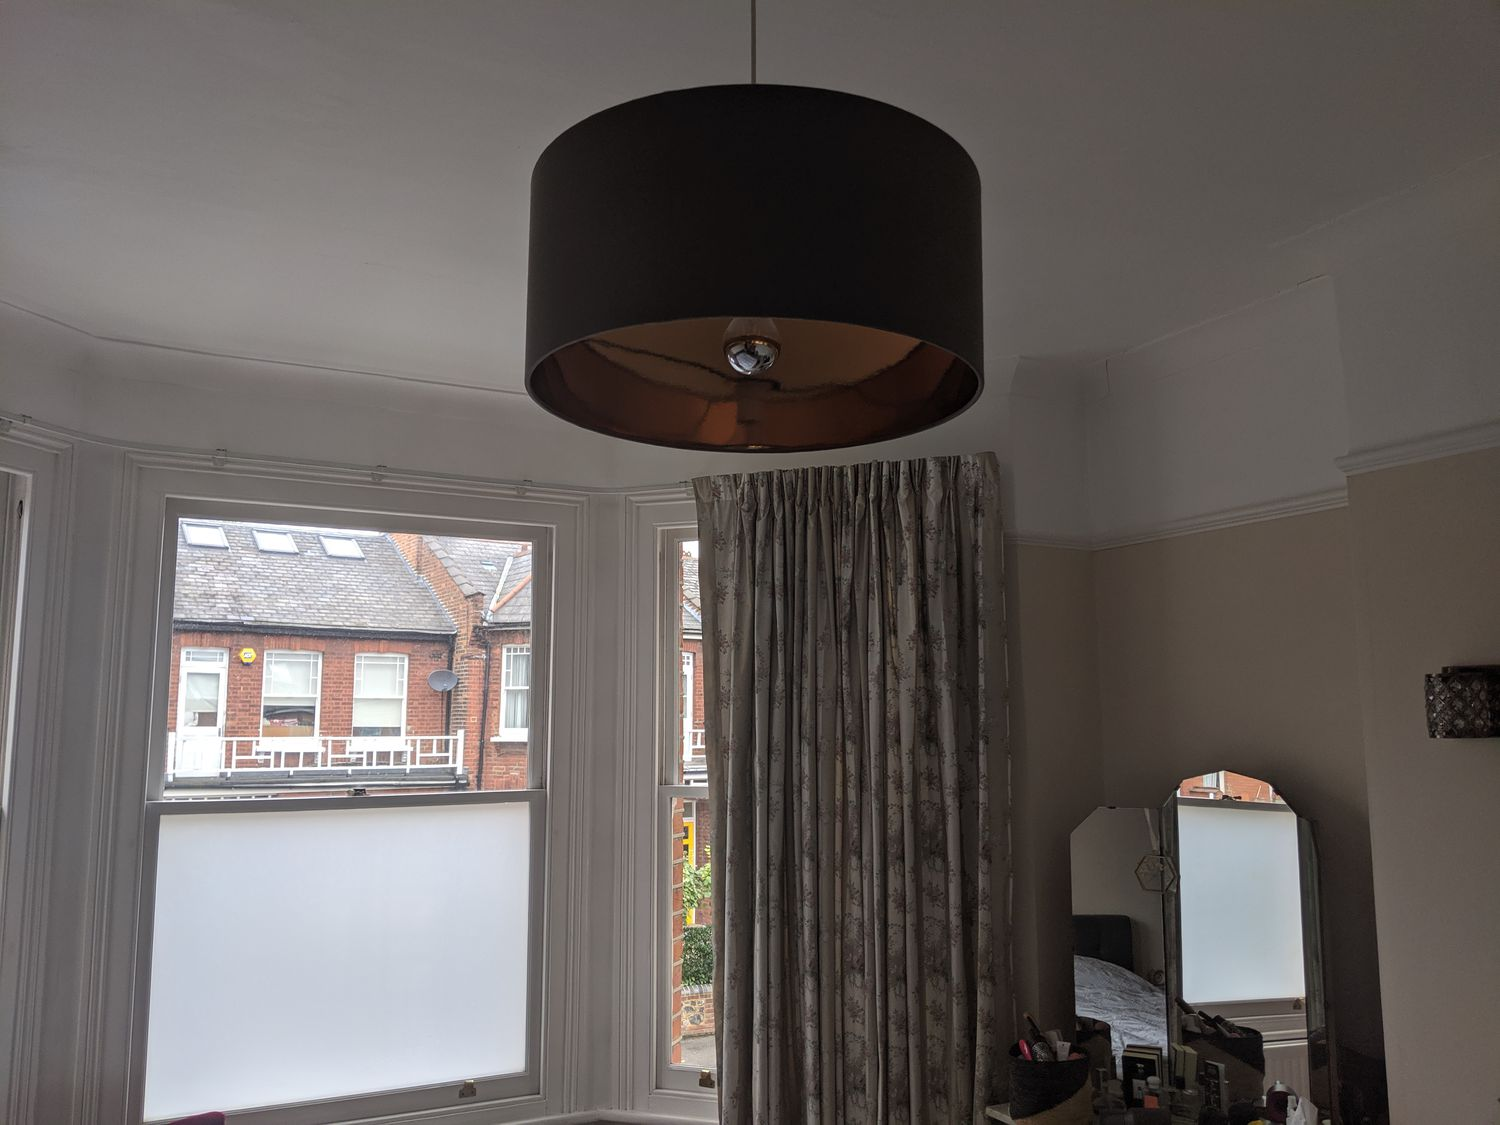 A photo of the dark grey plain lampshade which was there before the new one was installed.